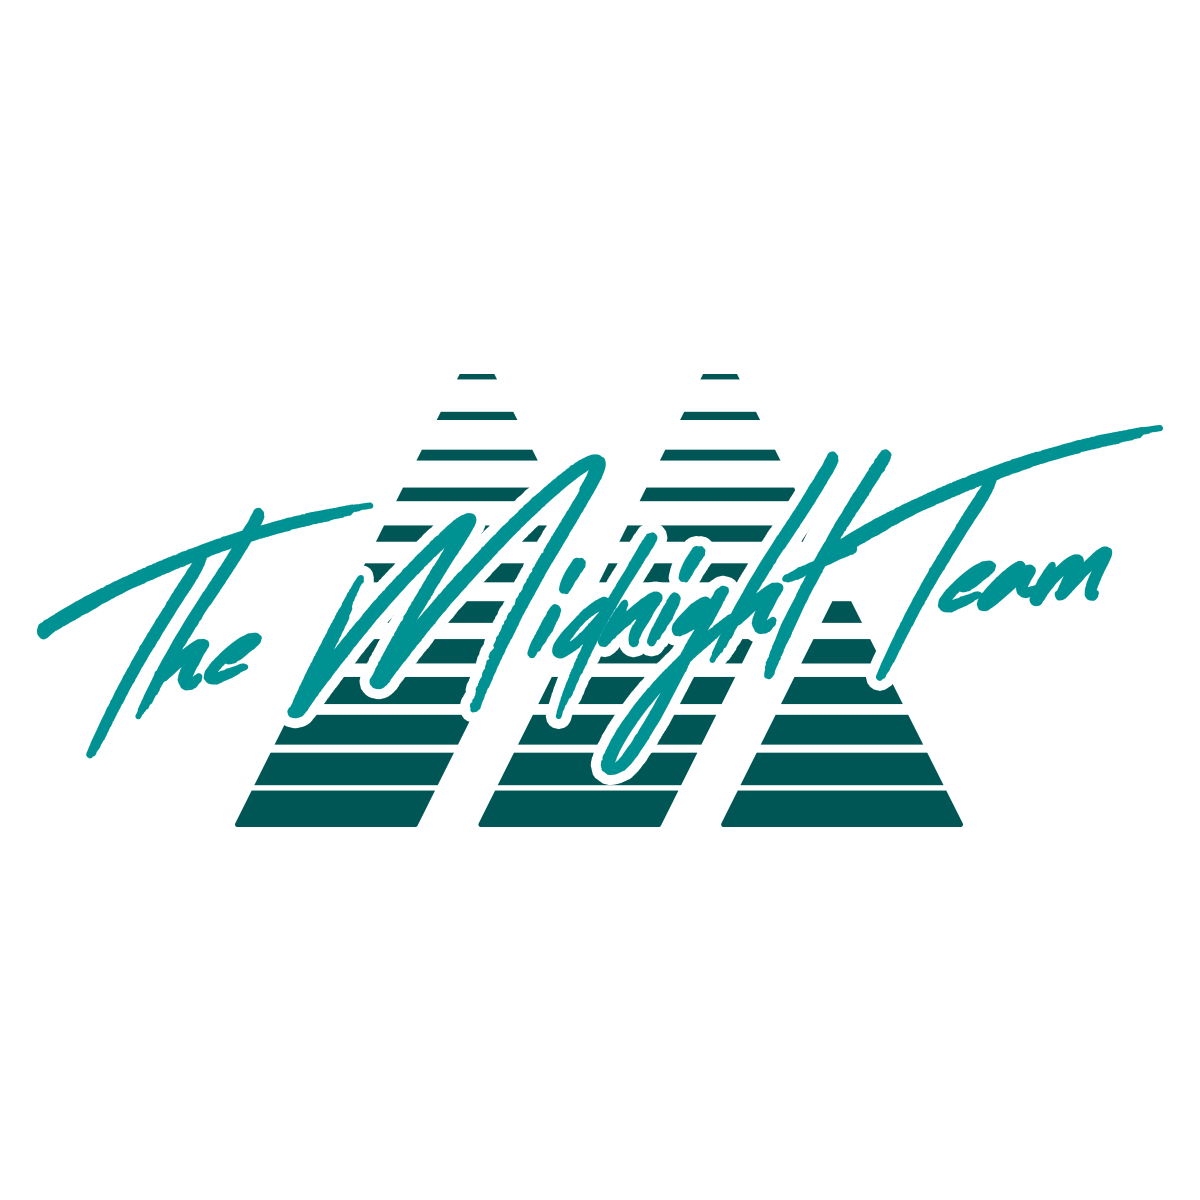 Logo The Midnight Team